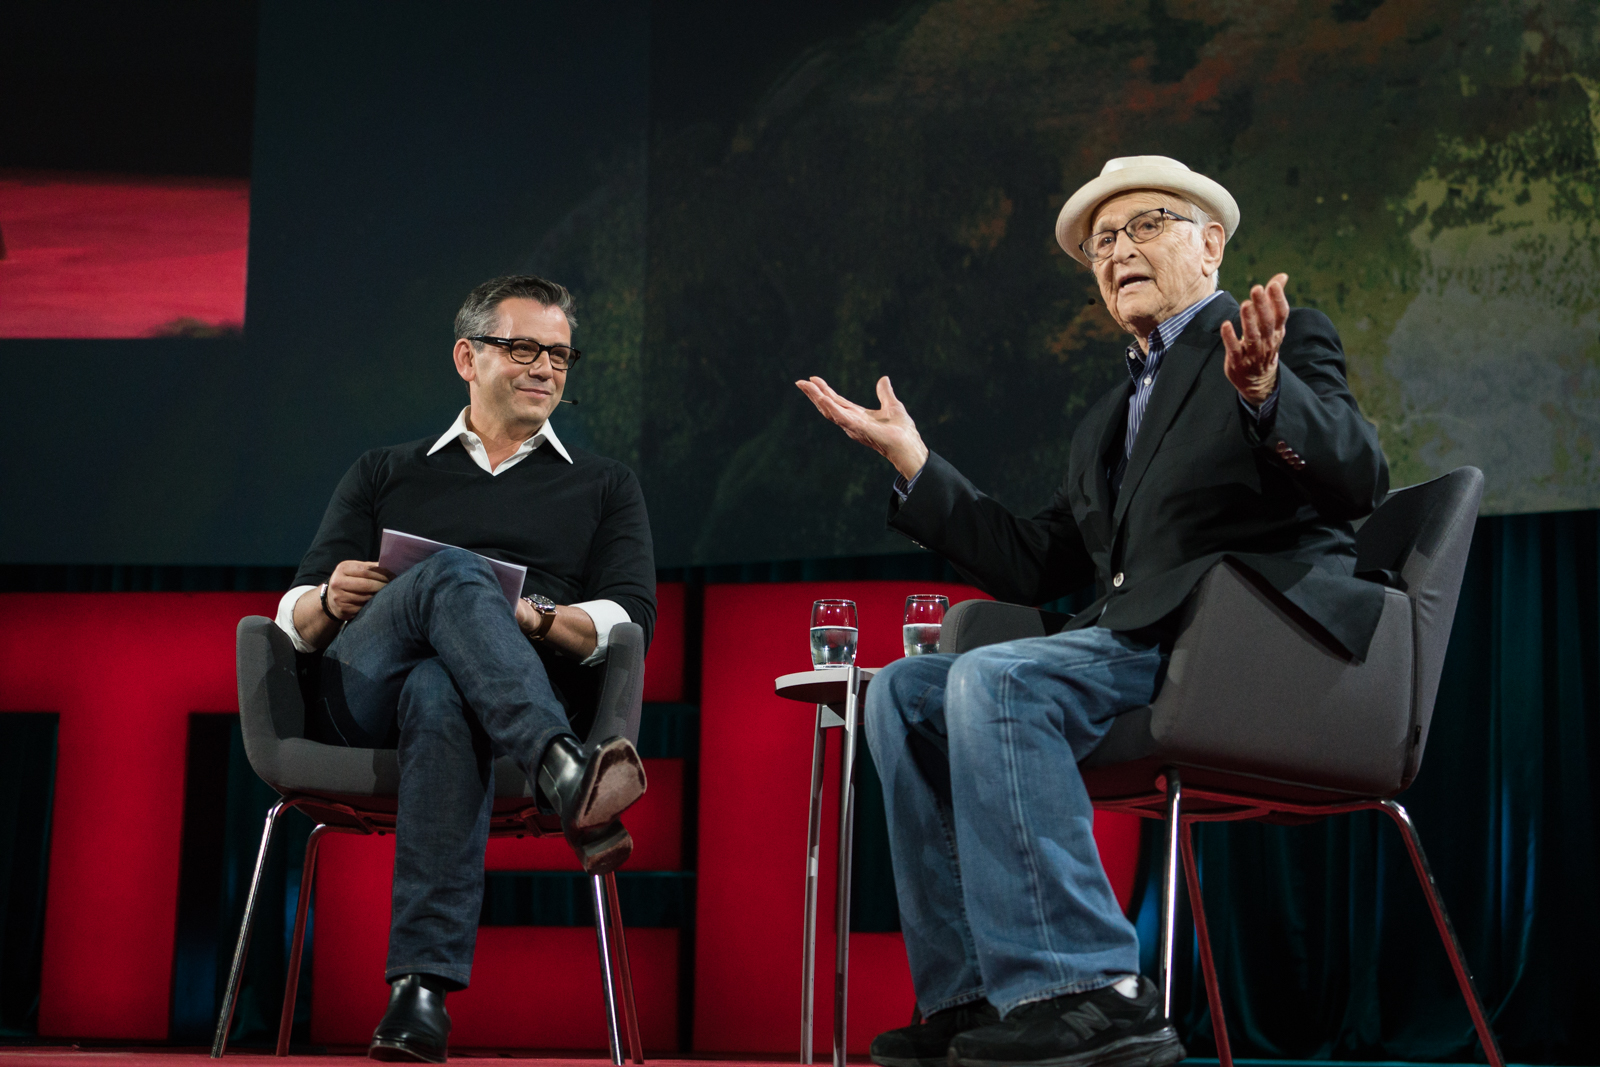 Eric Hirshberg interviews Norman Lear at TED2016 - Dream, February 15-19, 2016, Vancouver Convention Center, Vancouver, Canada. Photo: Bret Hartman / TED